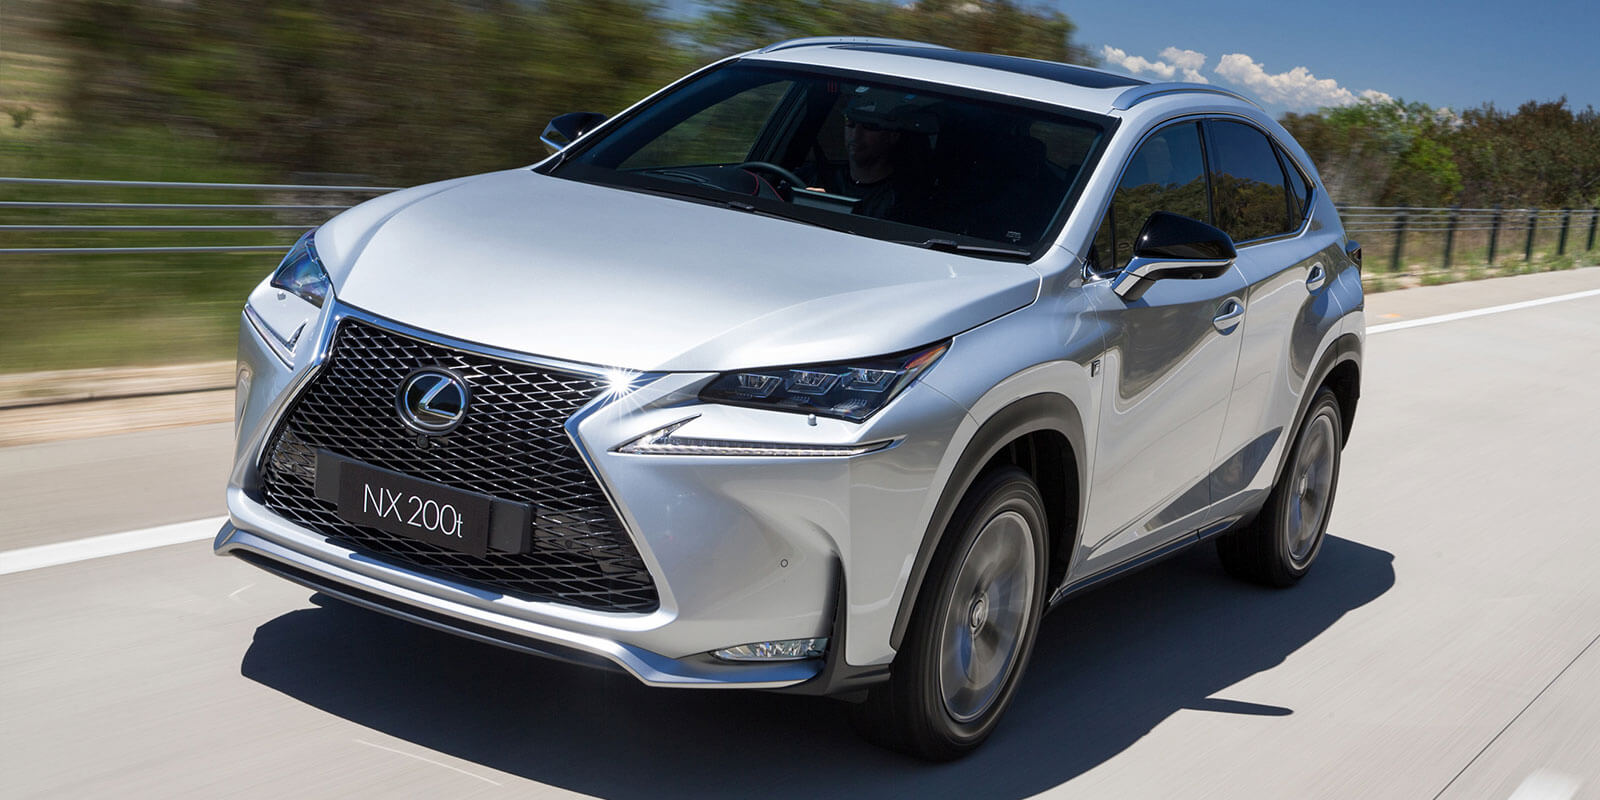 Service ace: The popular NX SUV has brought new buyers into Lexus dealerships, and the Japanese brand is clearly keeping them happy in the service department – even high-demanding millennials.